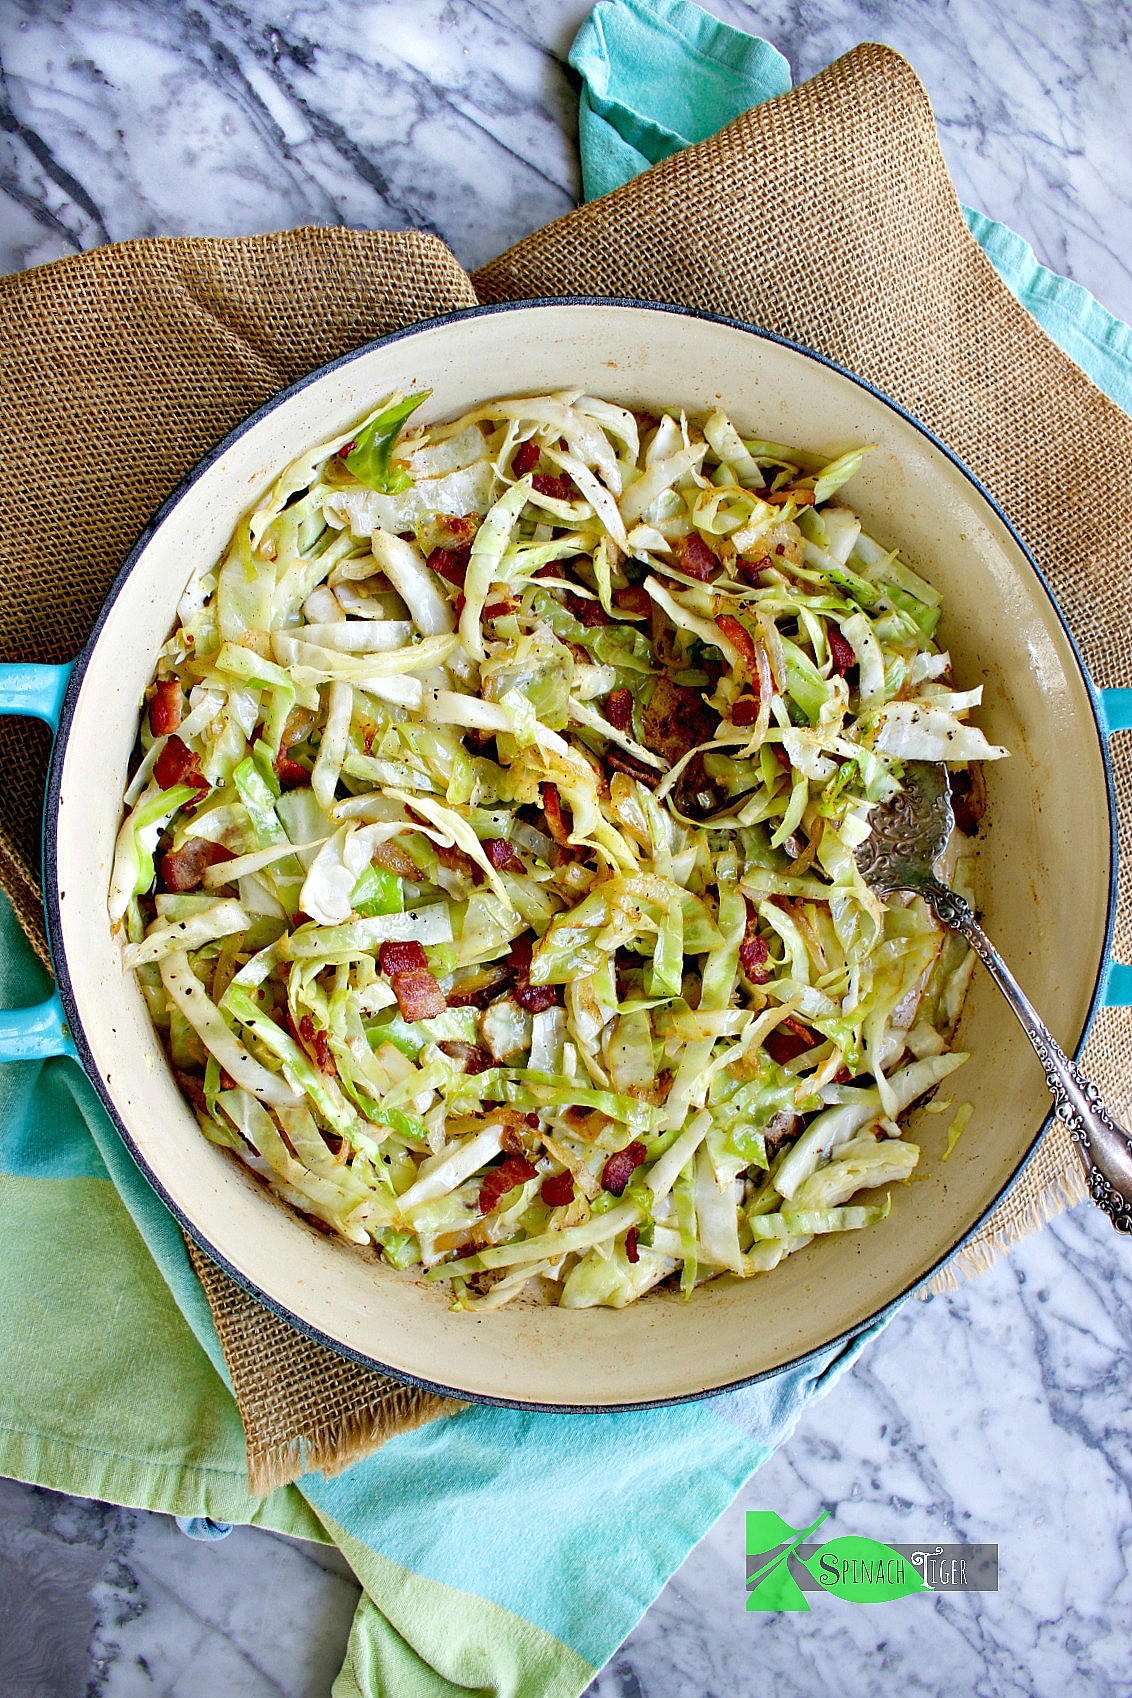 How to Make Sauteed Cabbage and Bacon from Spinach Tiger